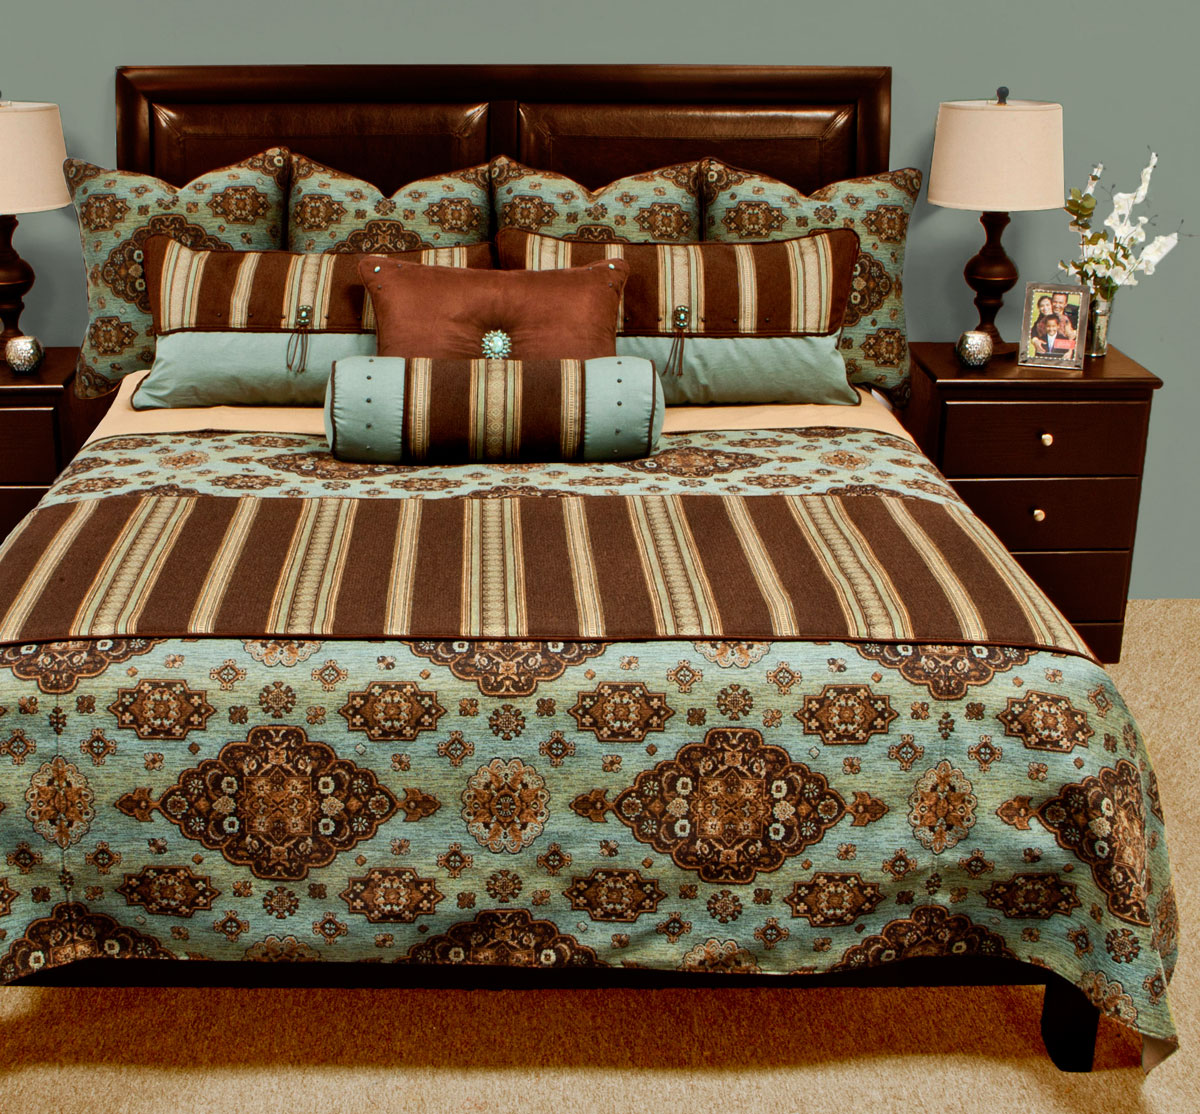 Kensington teal bedding set Teal bedding sets